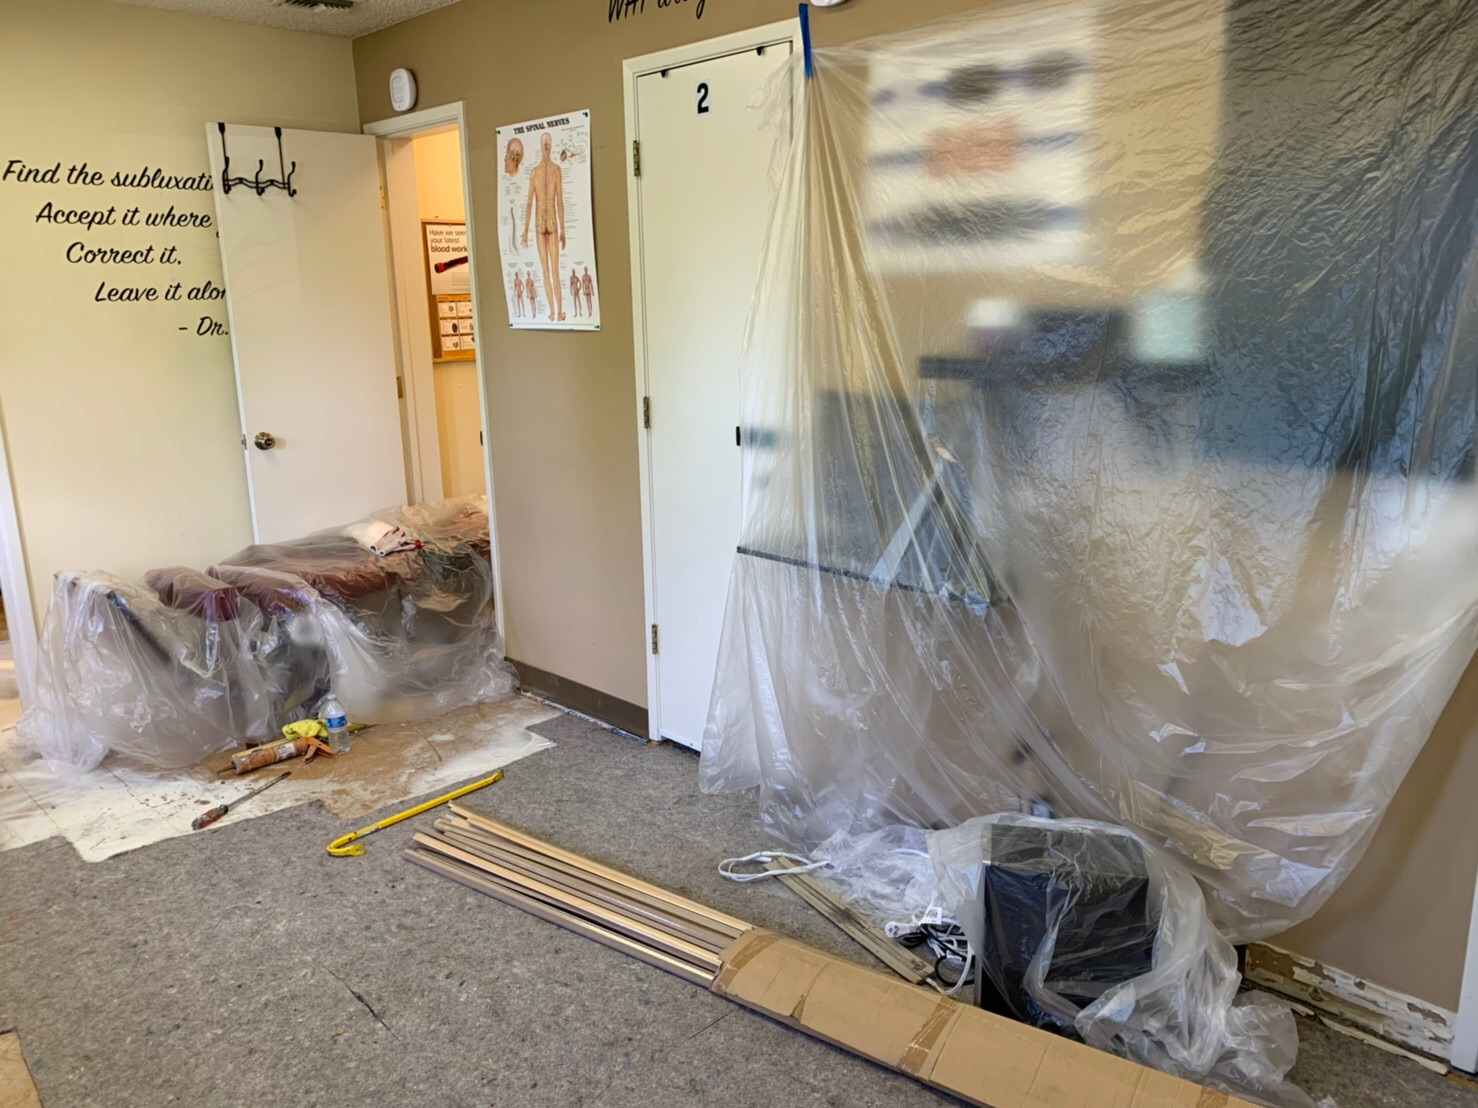 Renovation preparation, to put protections to prevent equipment damage in ICON Chiropractic Campbell Office